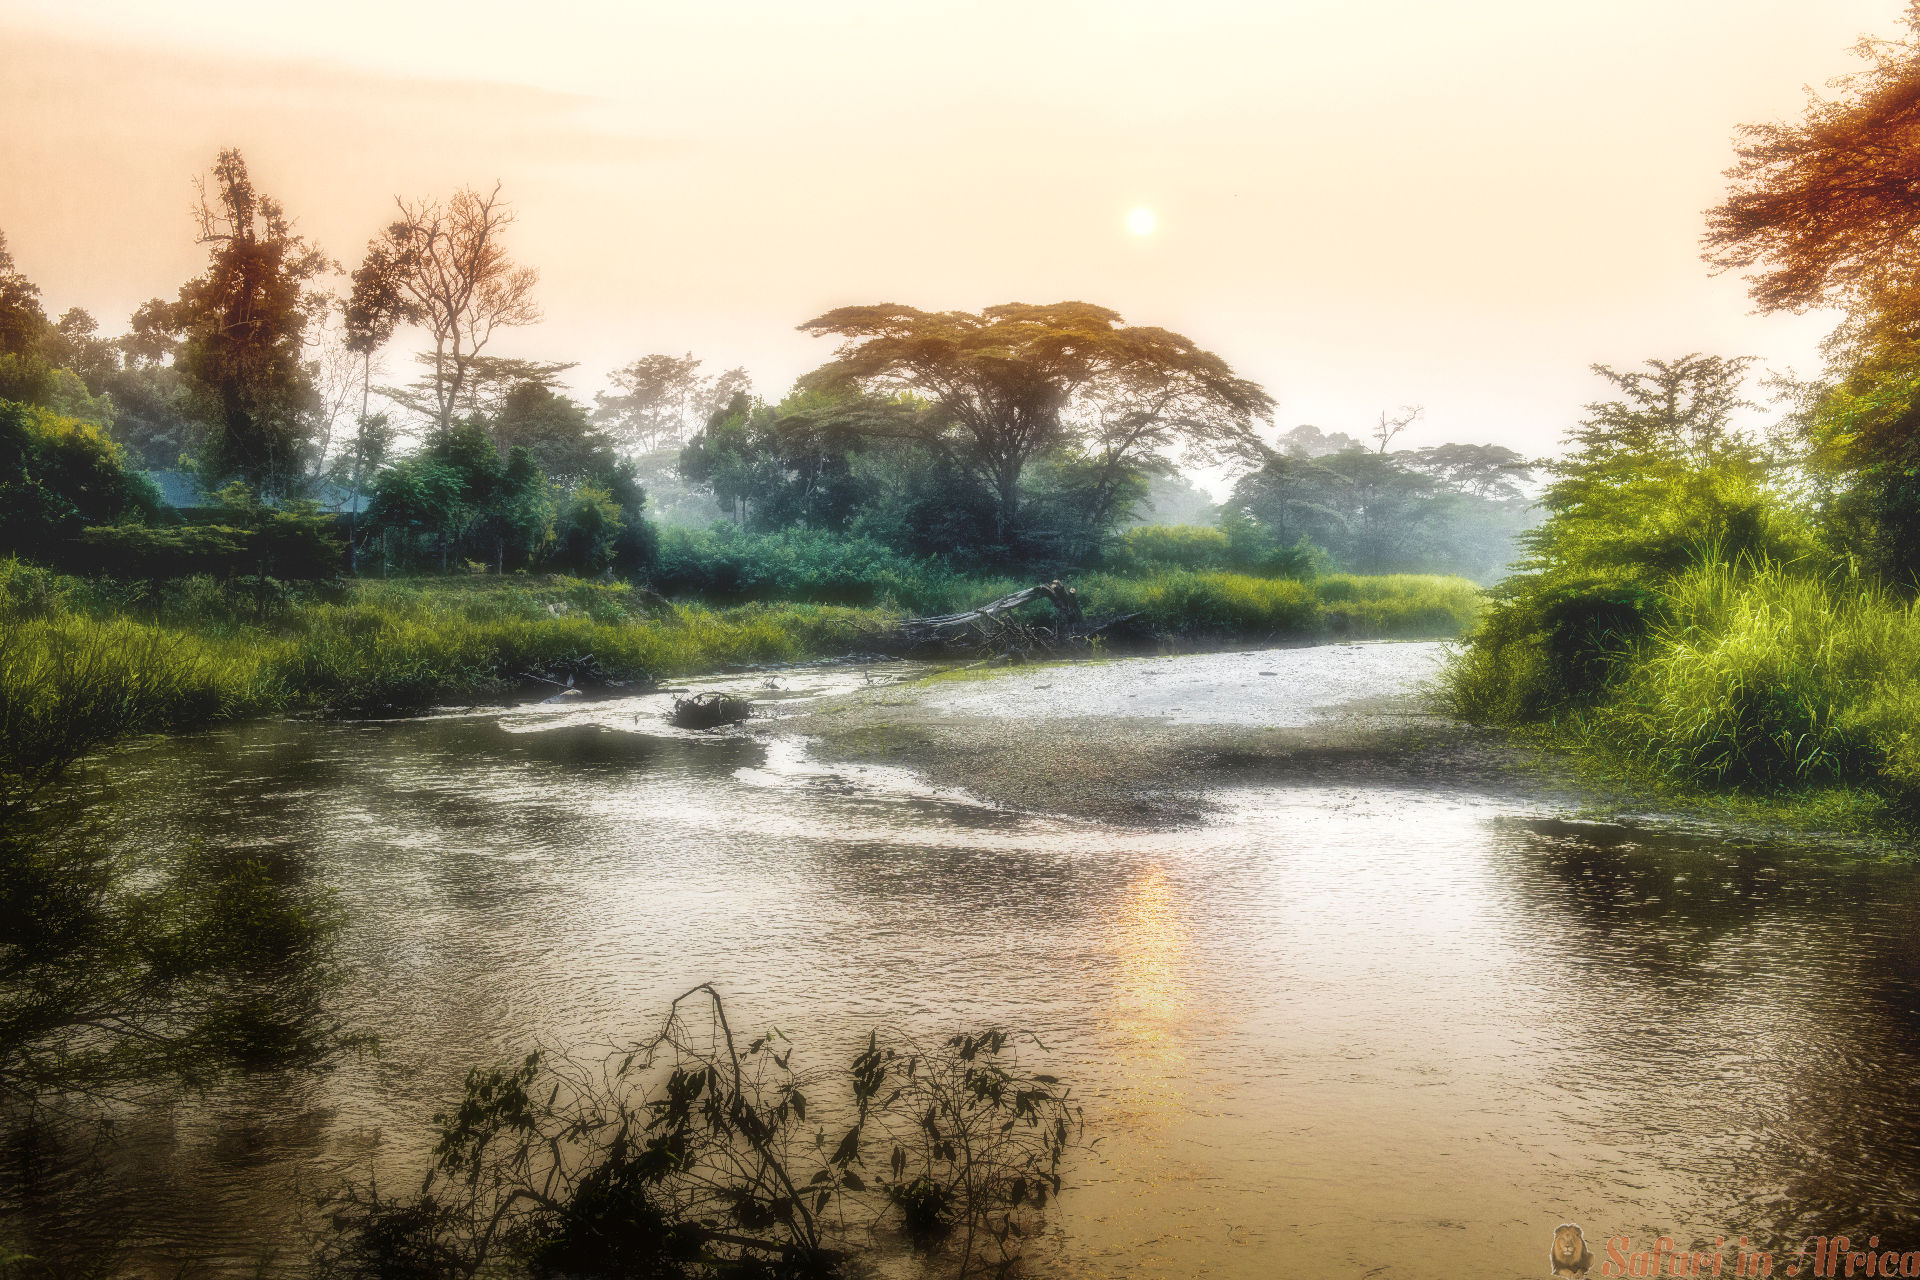 Morning on Ishasha River, Queen Elizabeth National Park in Uganda